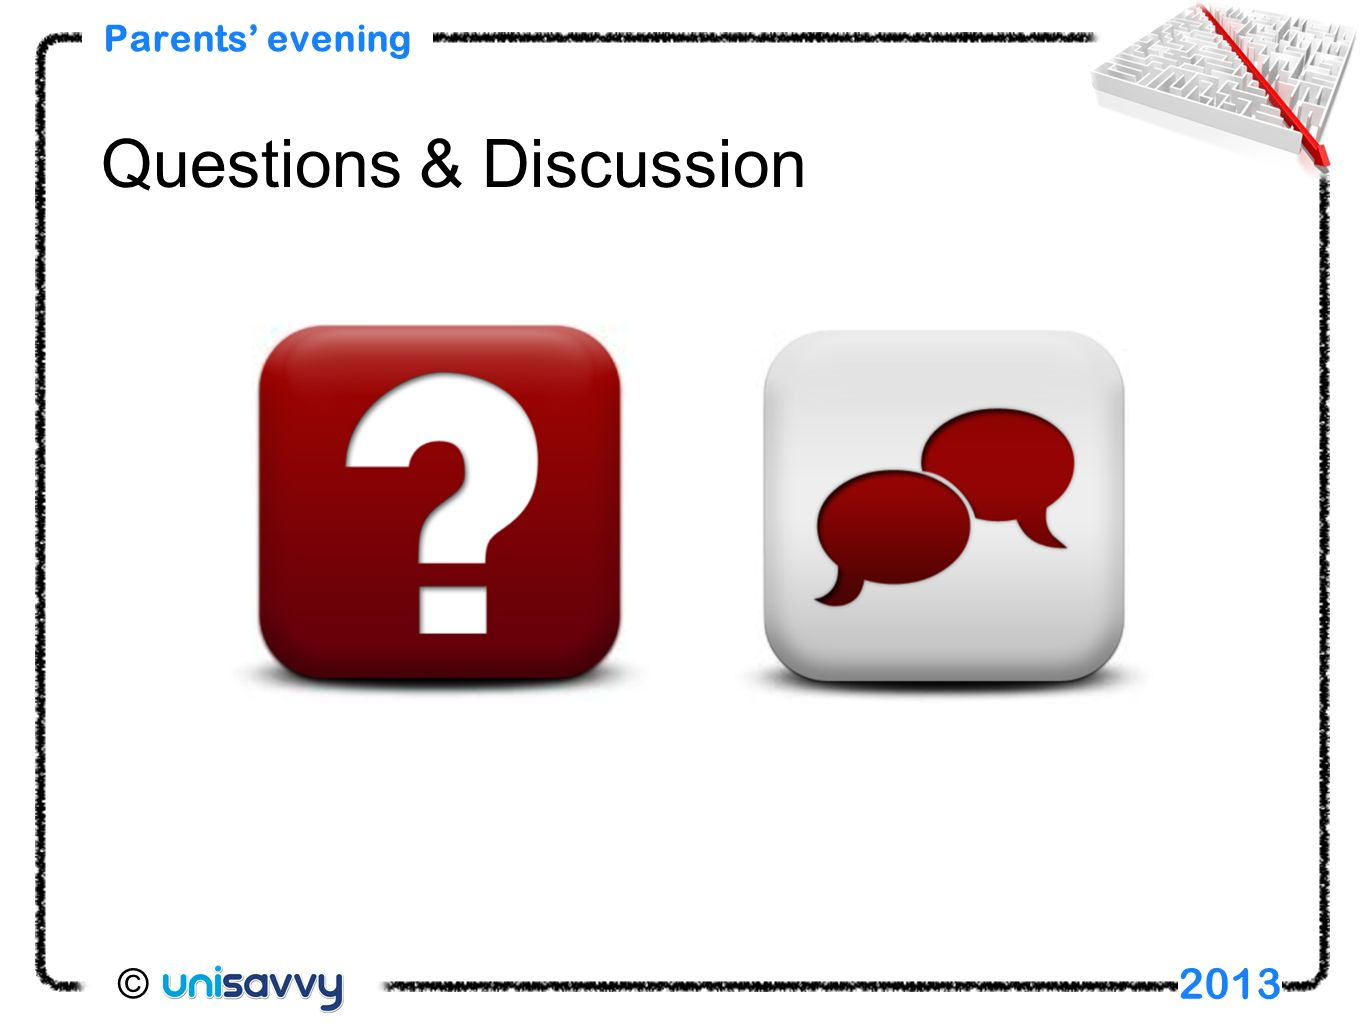 Parents' evening 2013 Questions & Discussion